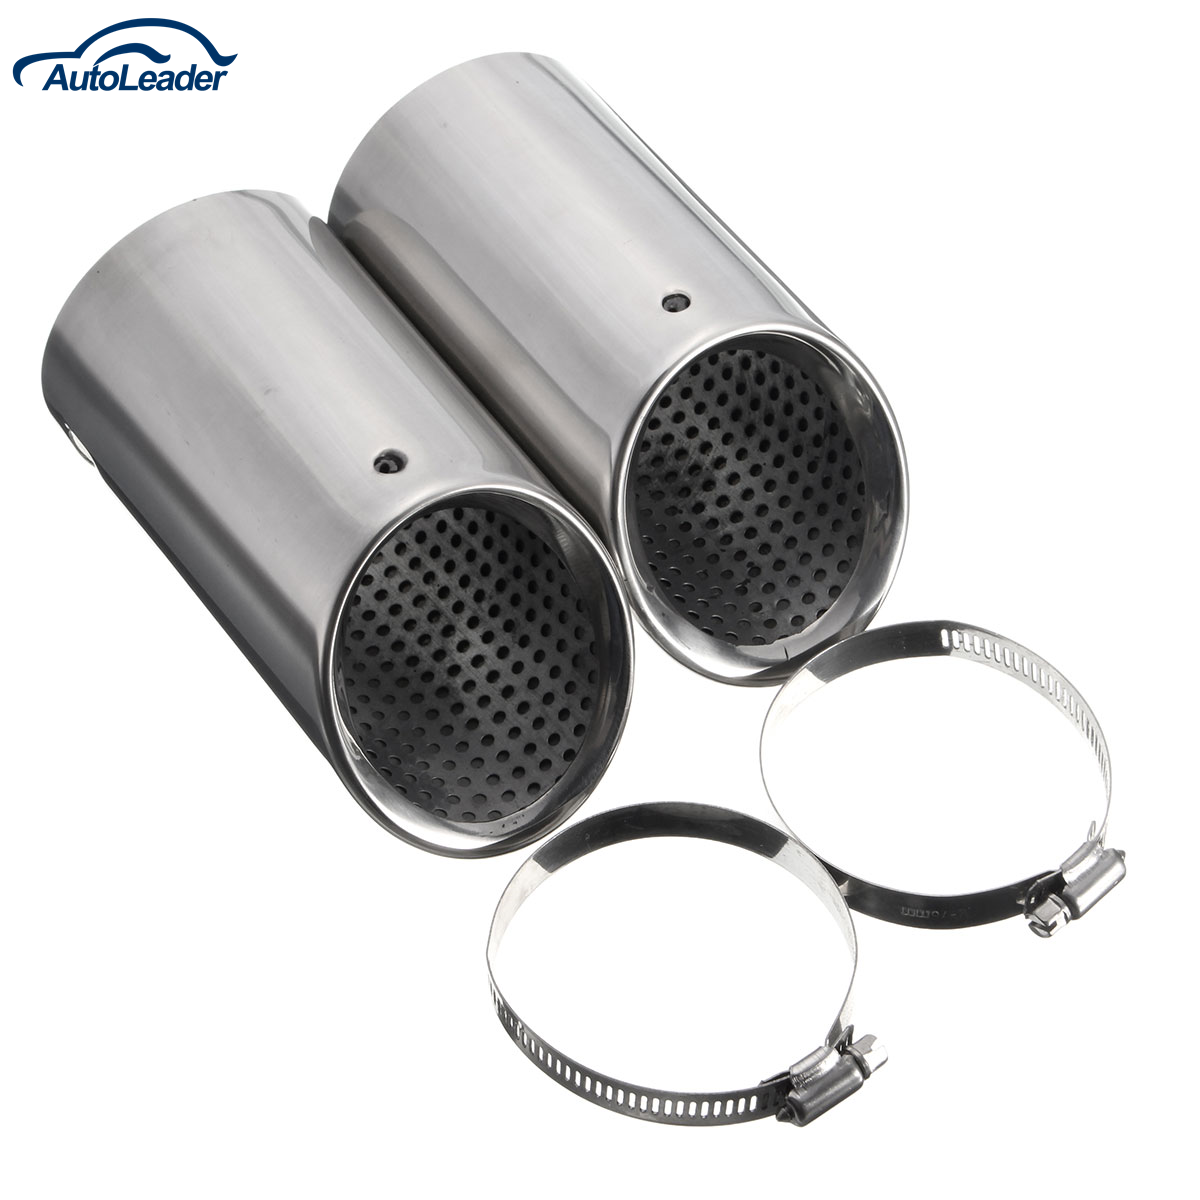 1 Pair Chrome Exhaust Tail Muffler Pipes Tips for VW/EOS /Passat B6 CC for Estate